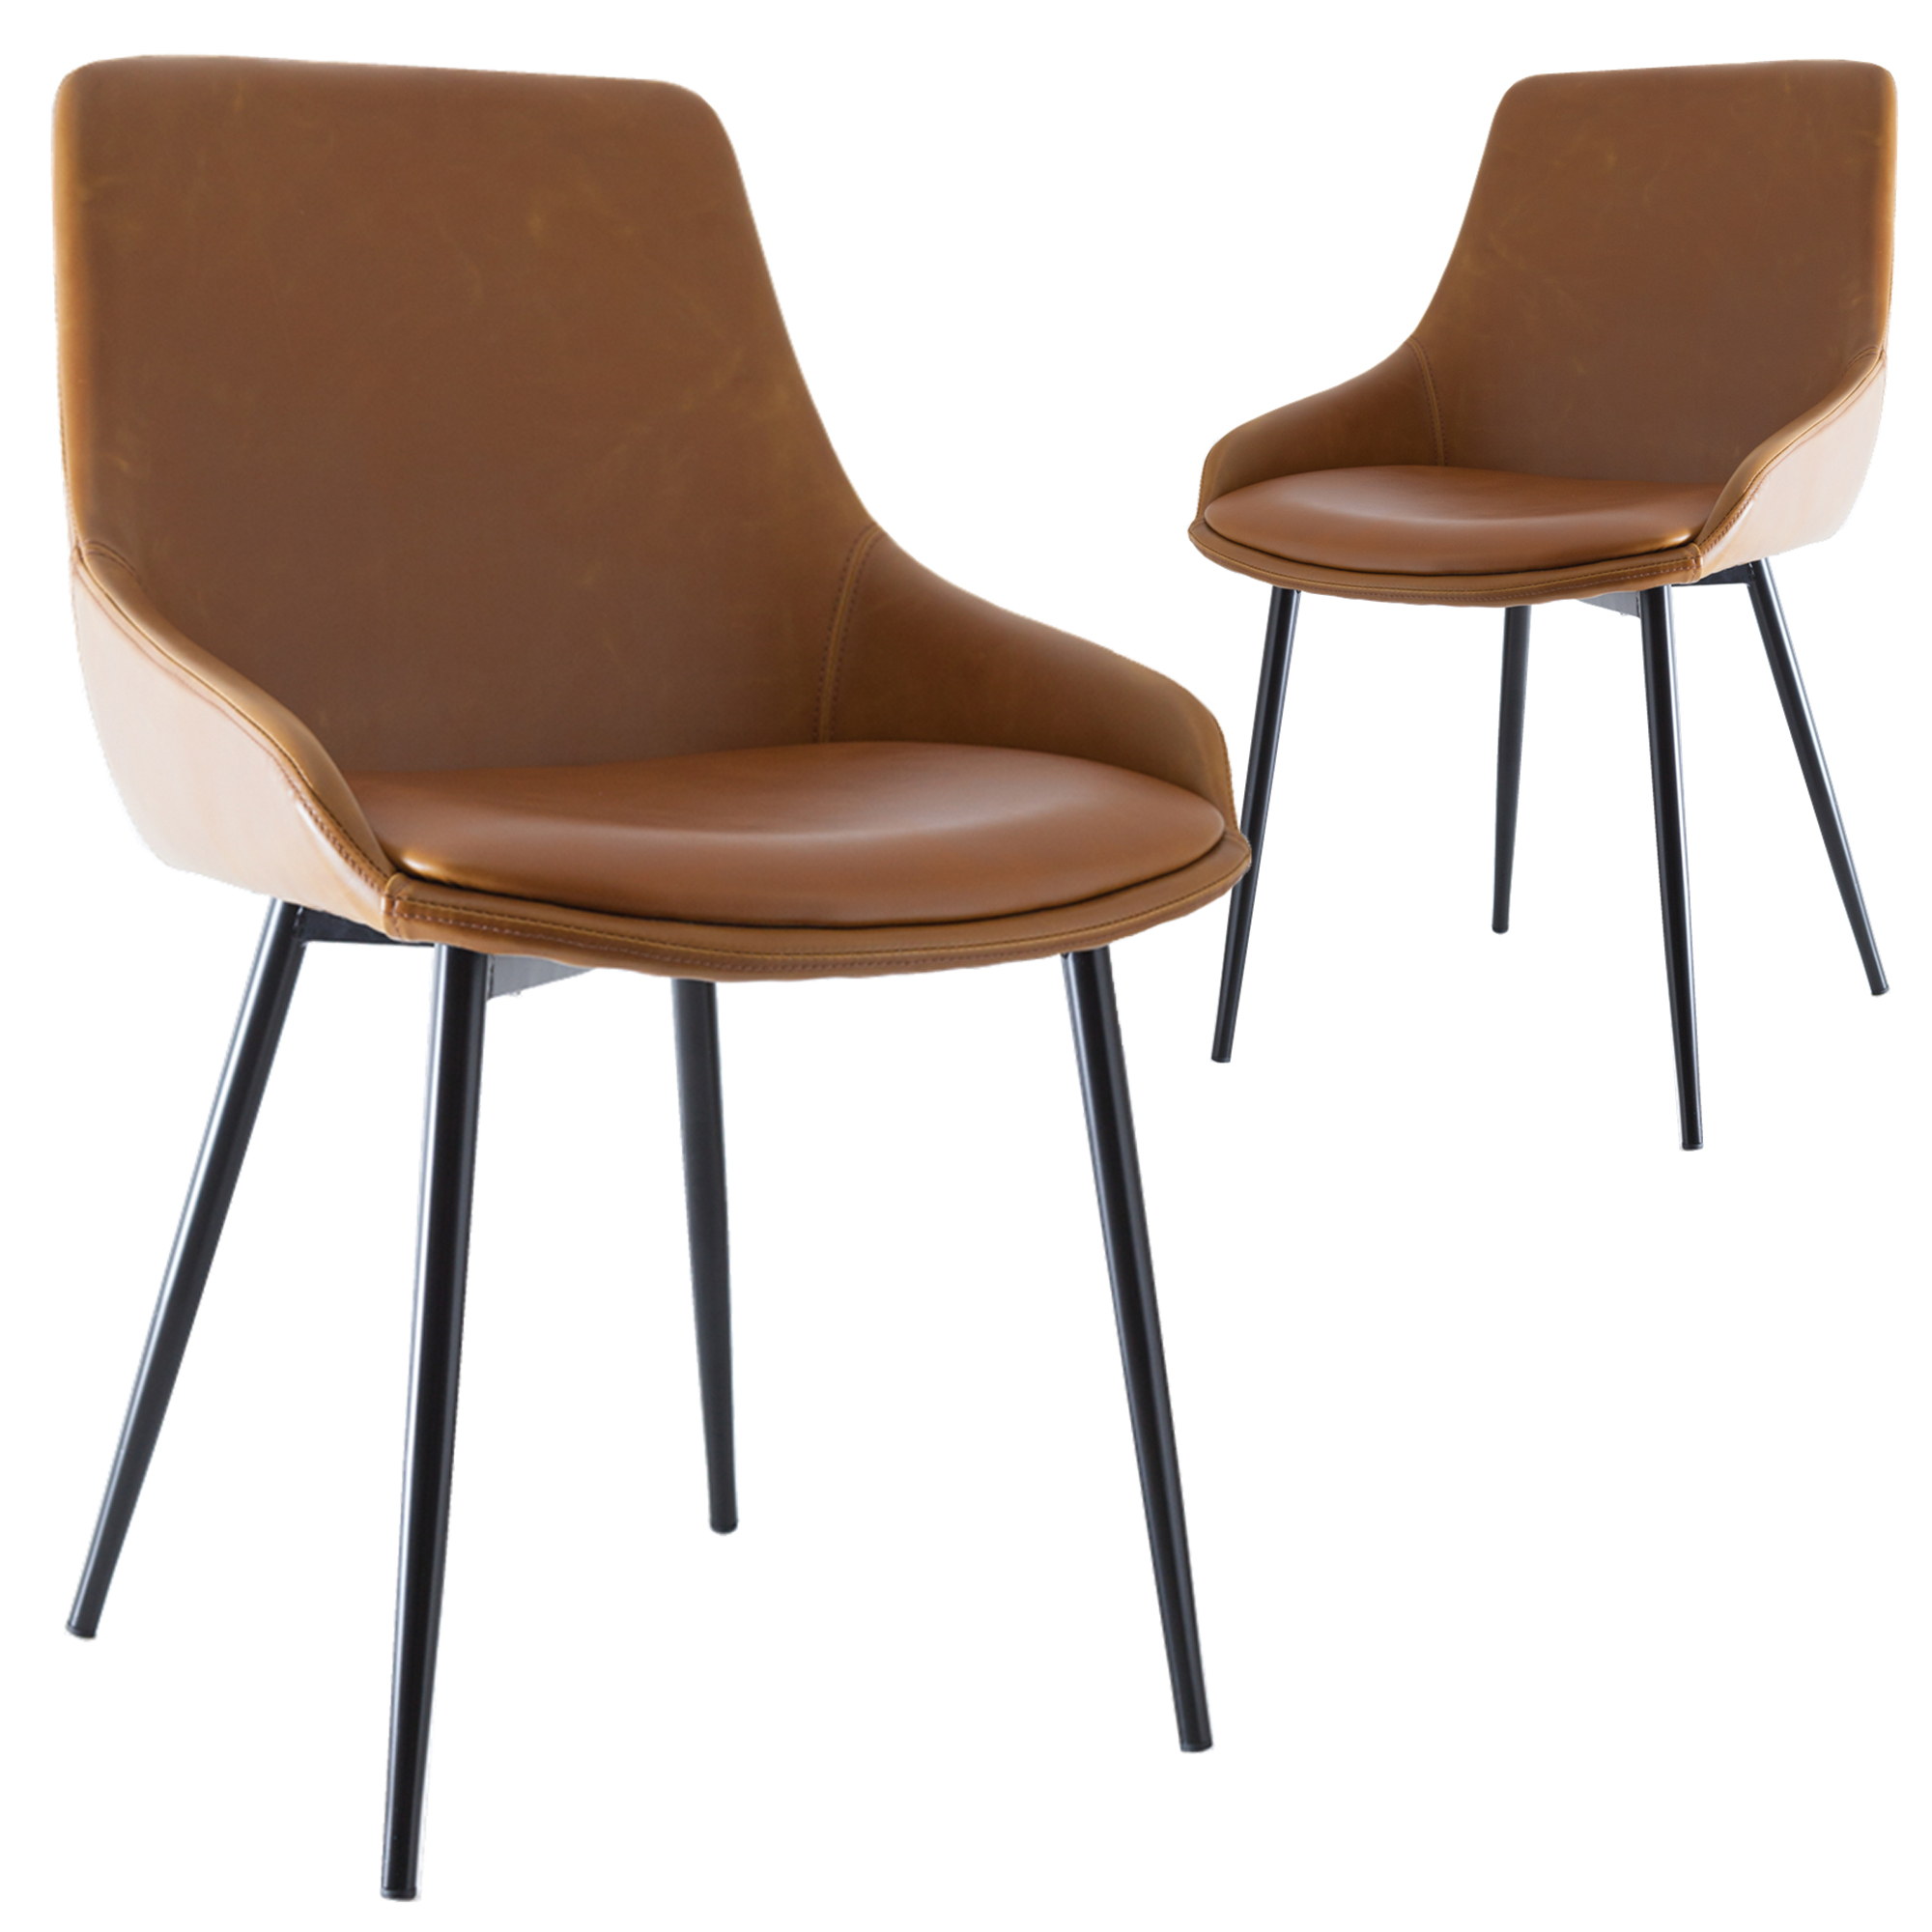 Sku mafu1025 tan lance faux leather dining chairs is also sometimes listed under the following manufacturer numbers mf1887